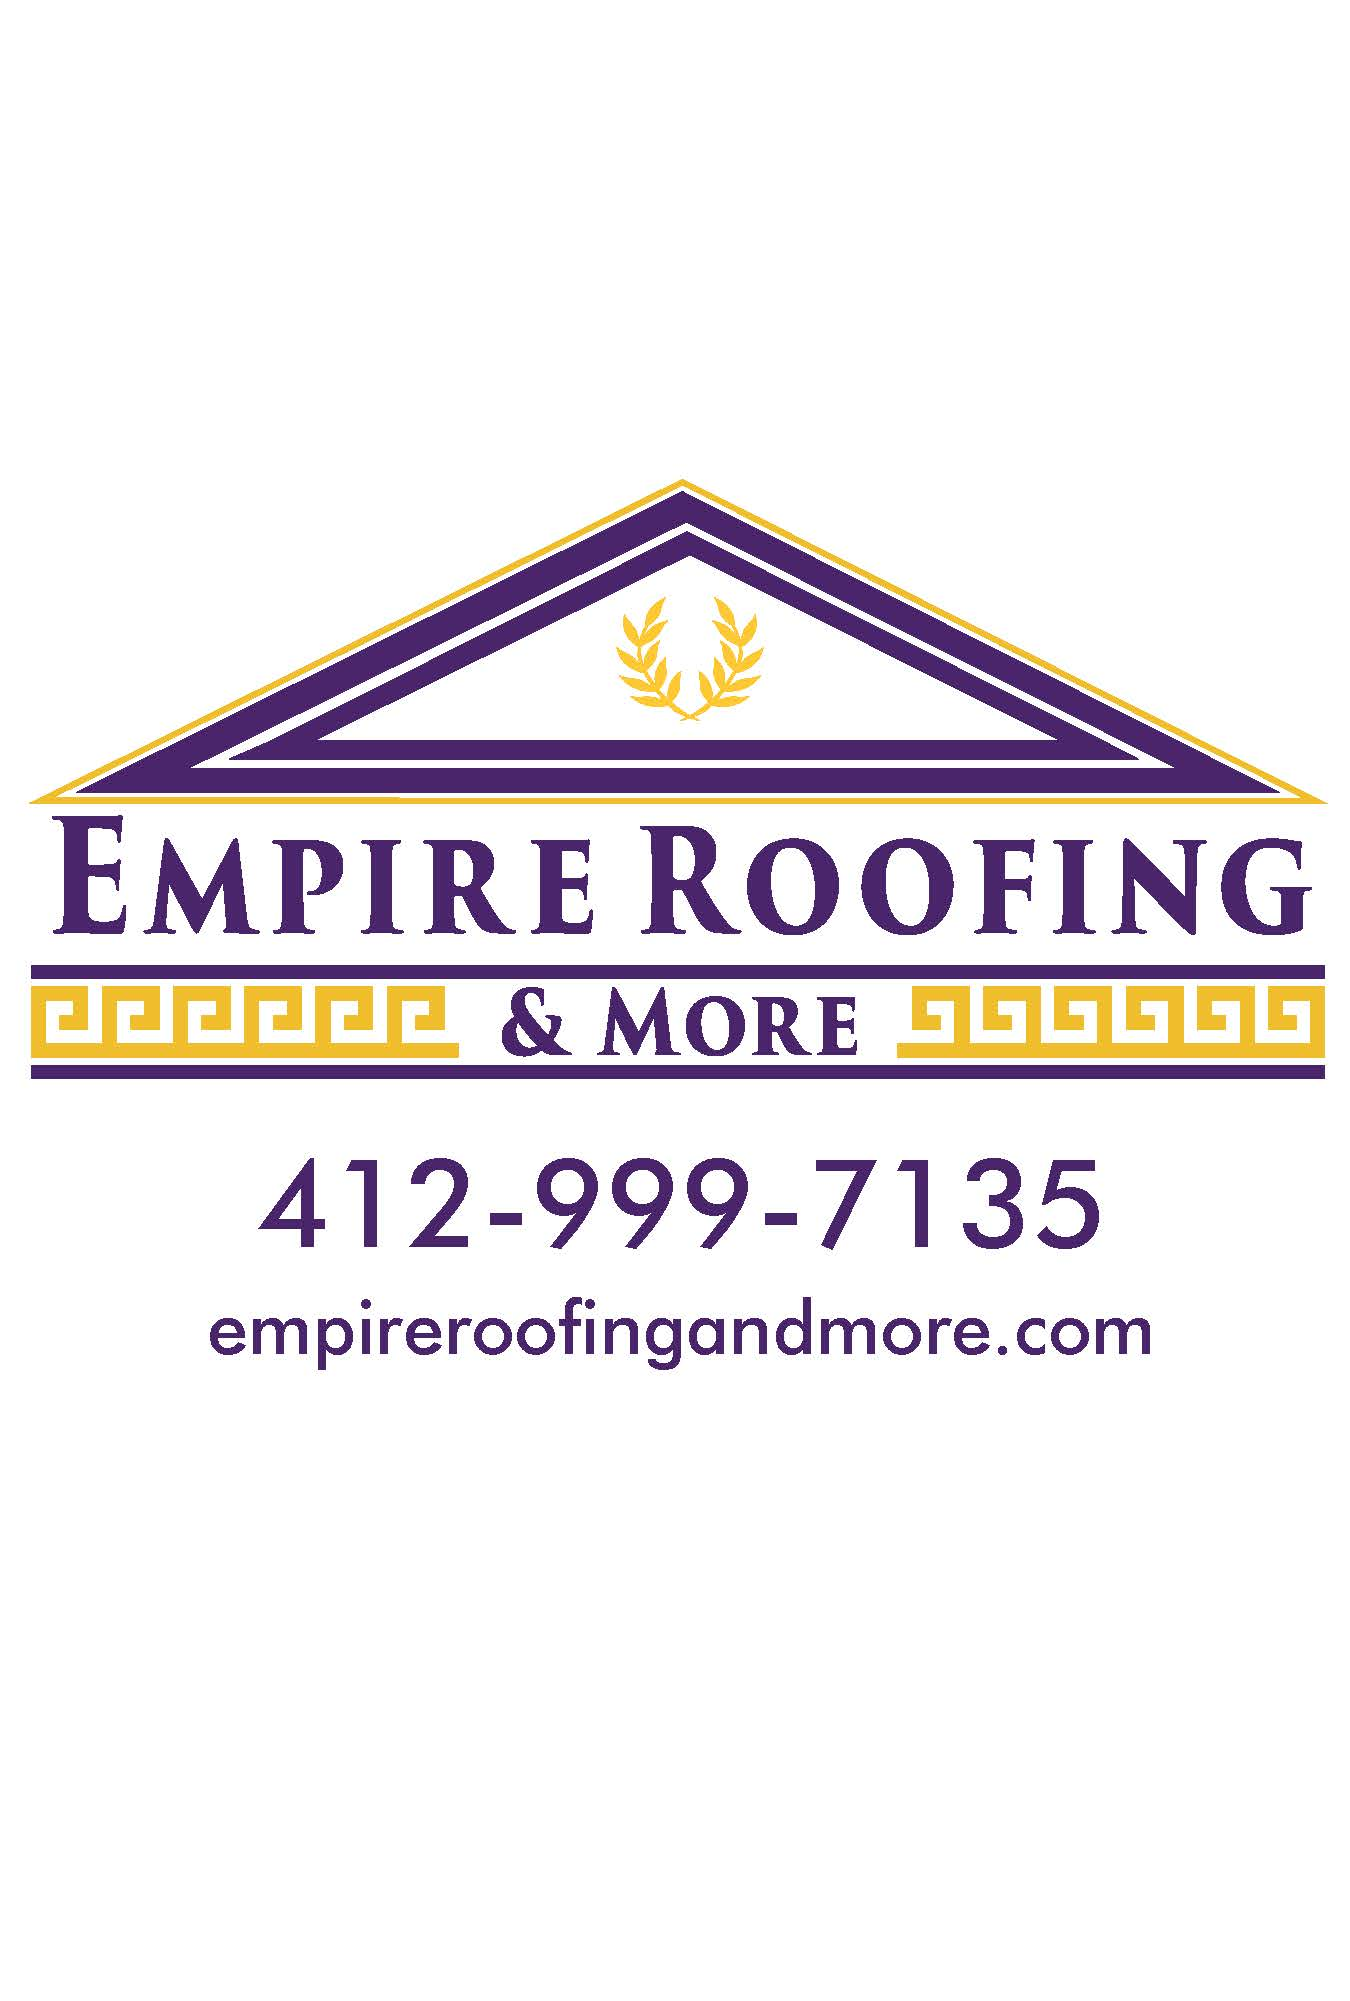 Empire Roofing & More logo